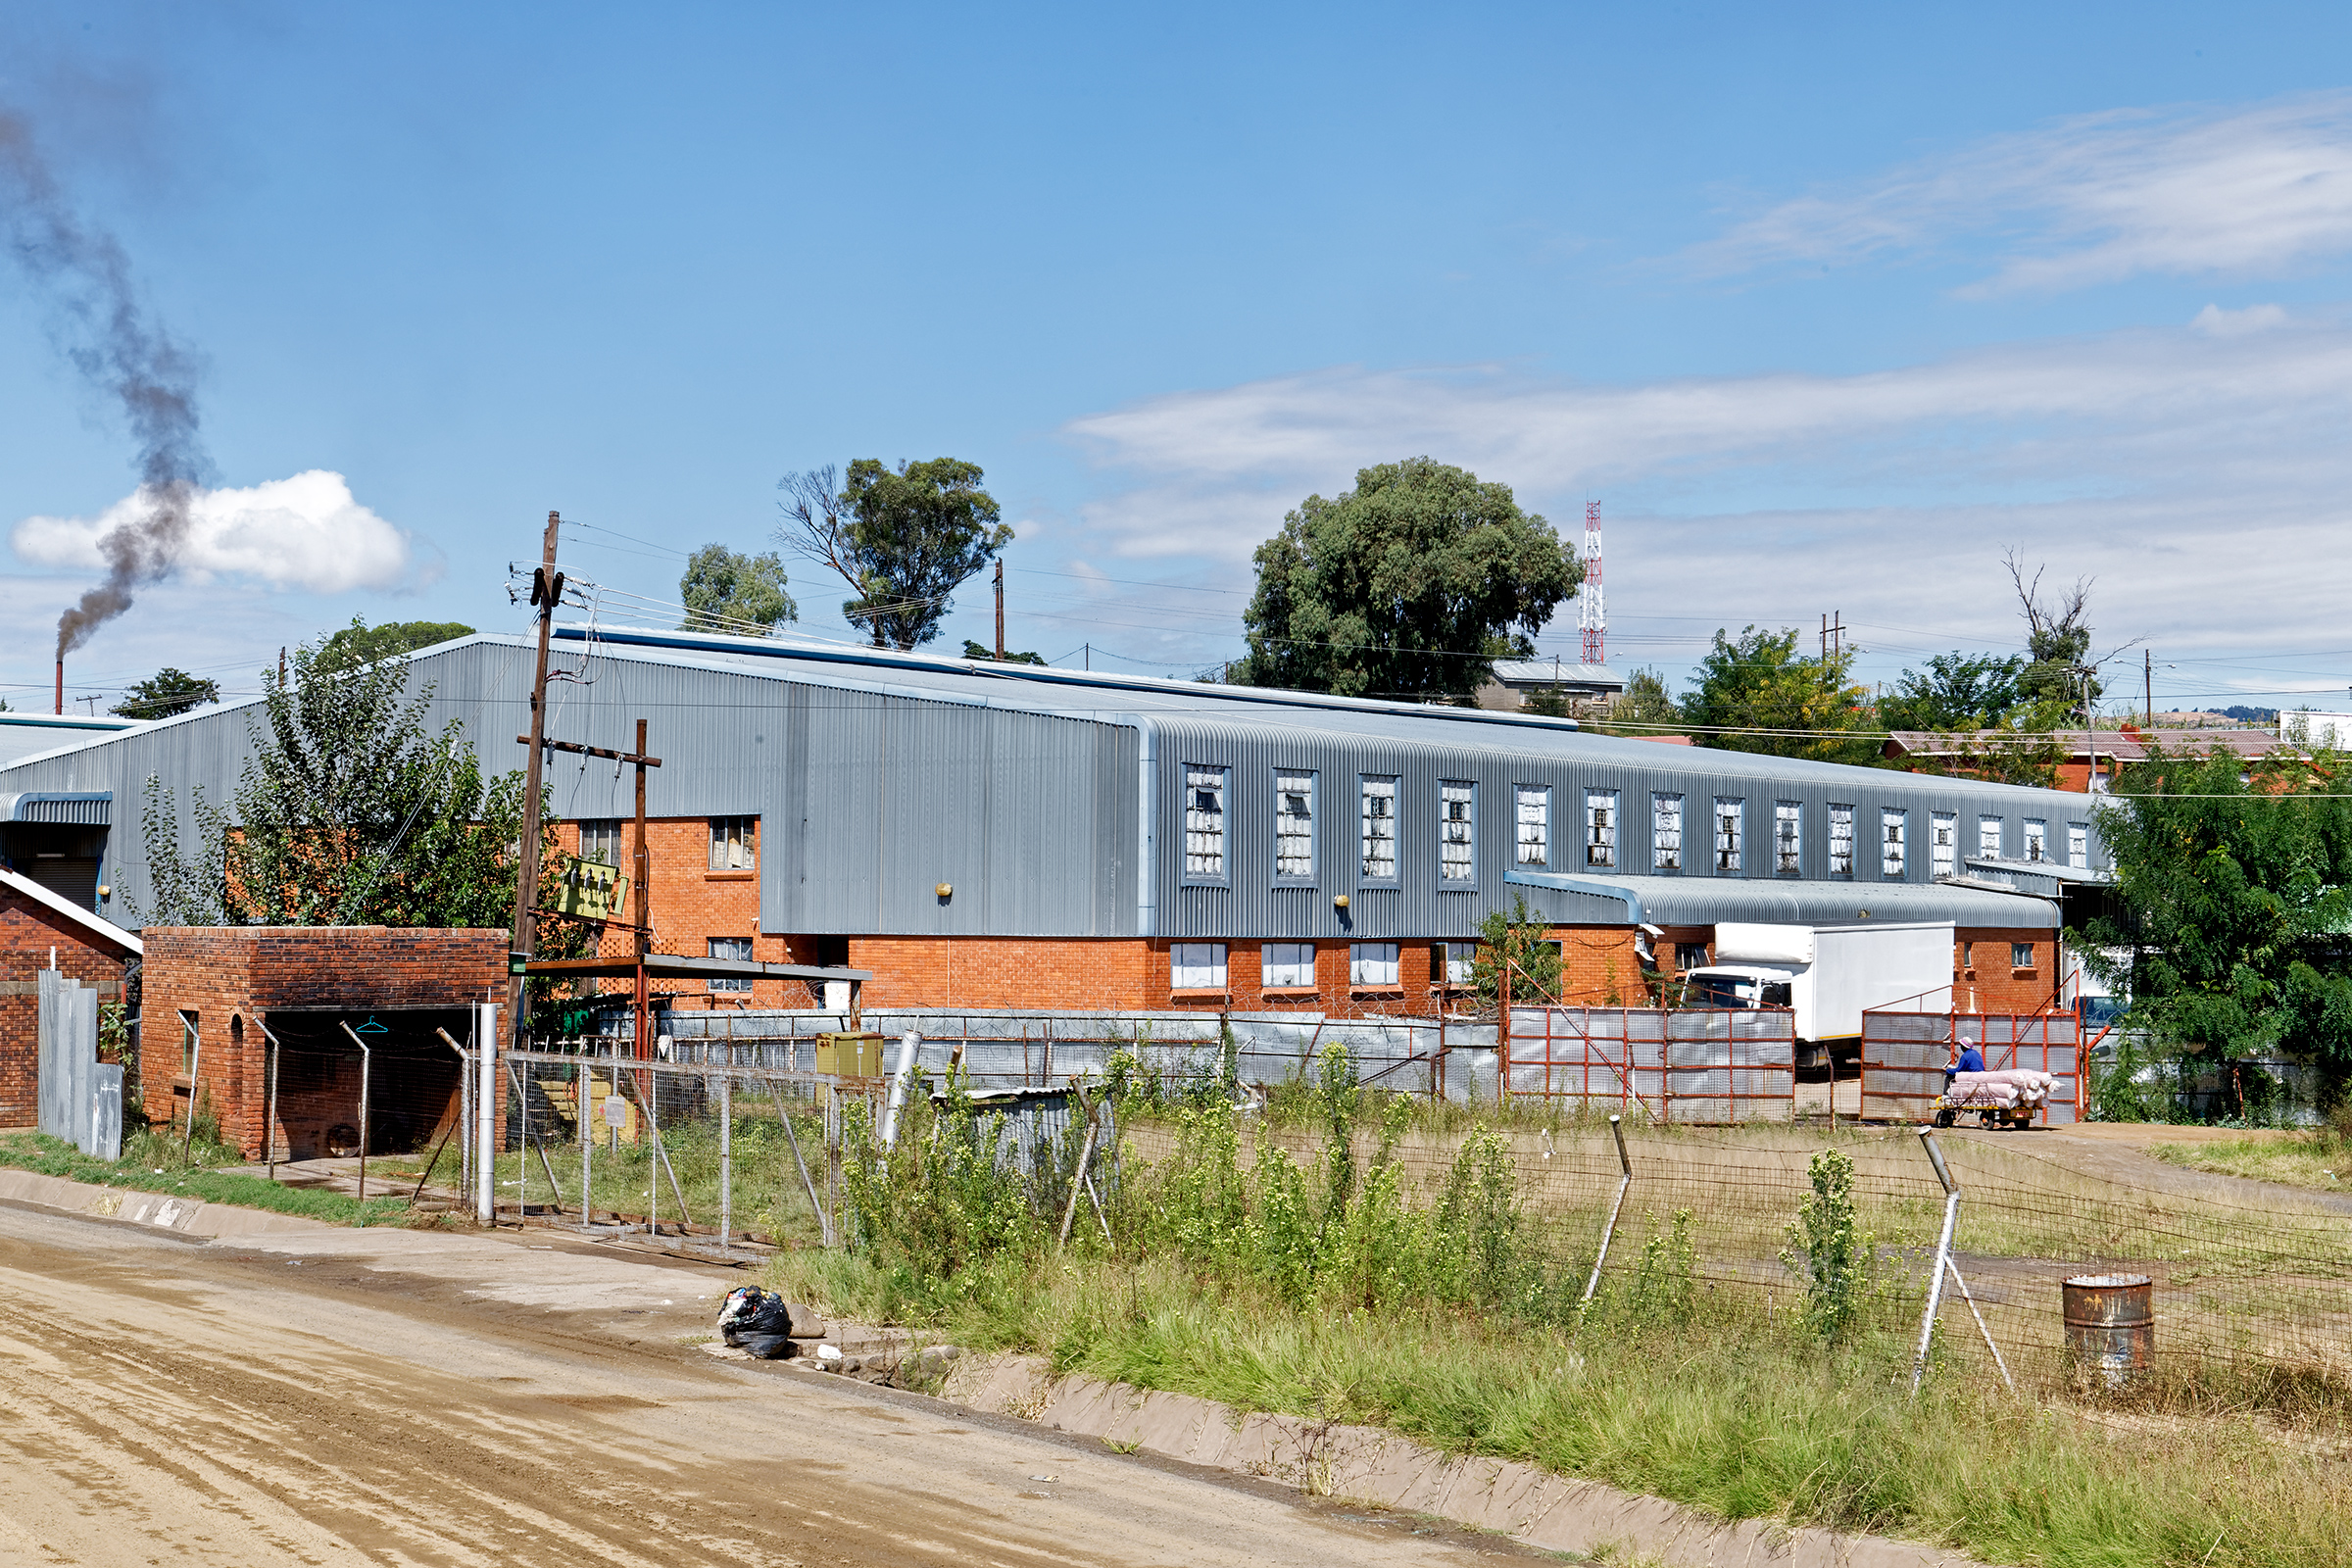 Hippo Knitting, a garment factory located in the industrial area Ha Hoohlo Maseru, Lesotho.